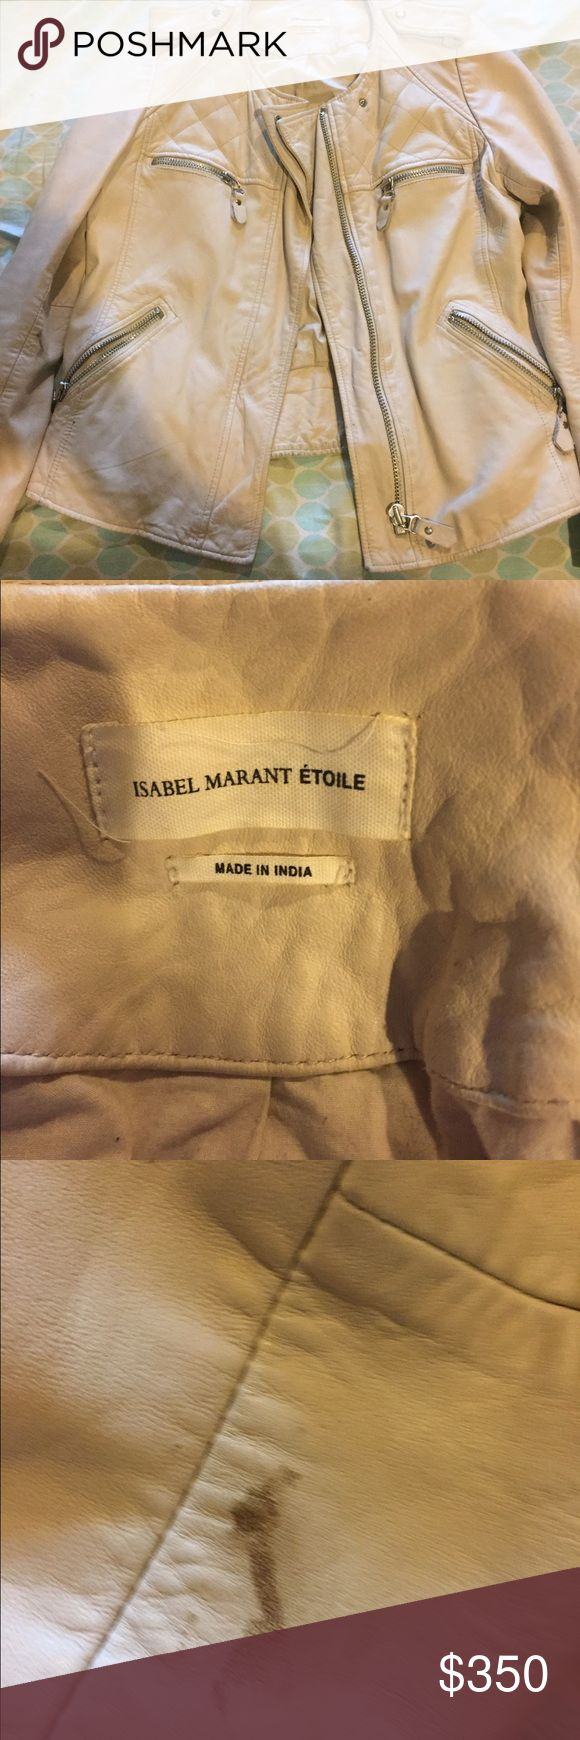 Isabel Marant Etoile Lambskin Leather Jacket Barely worn. Small stain on inner arm. Purchased at barneys Isabel Marant Jackets & Coats